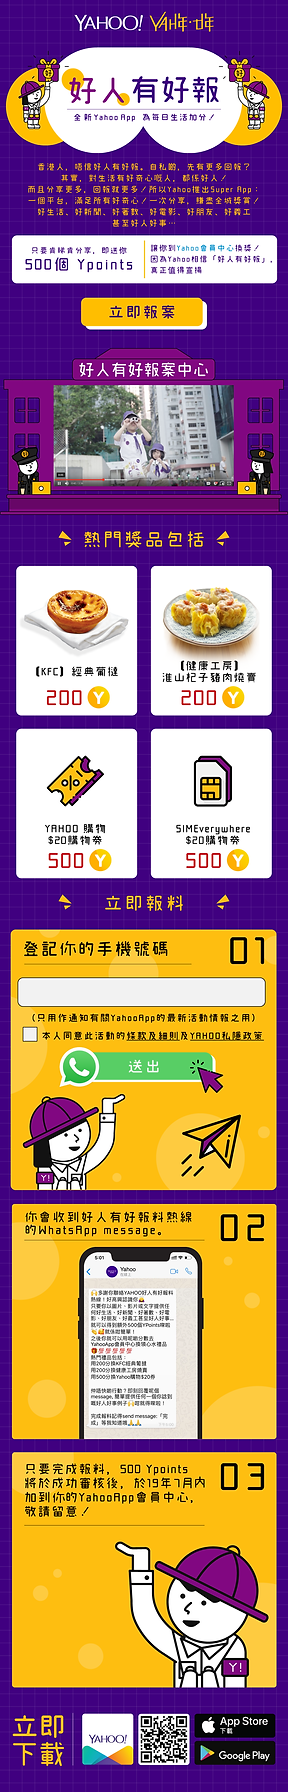 Winnie_Yahoo20_campaignsite_mobile.png